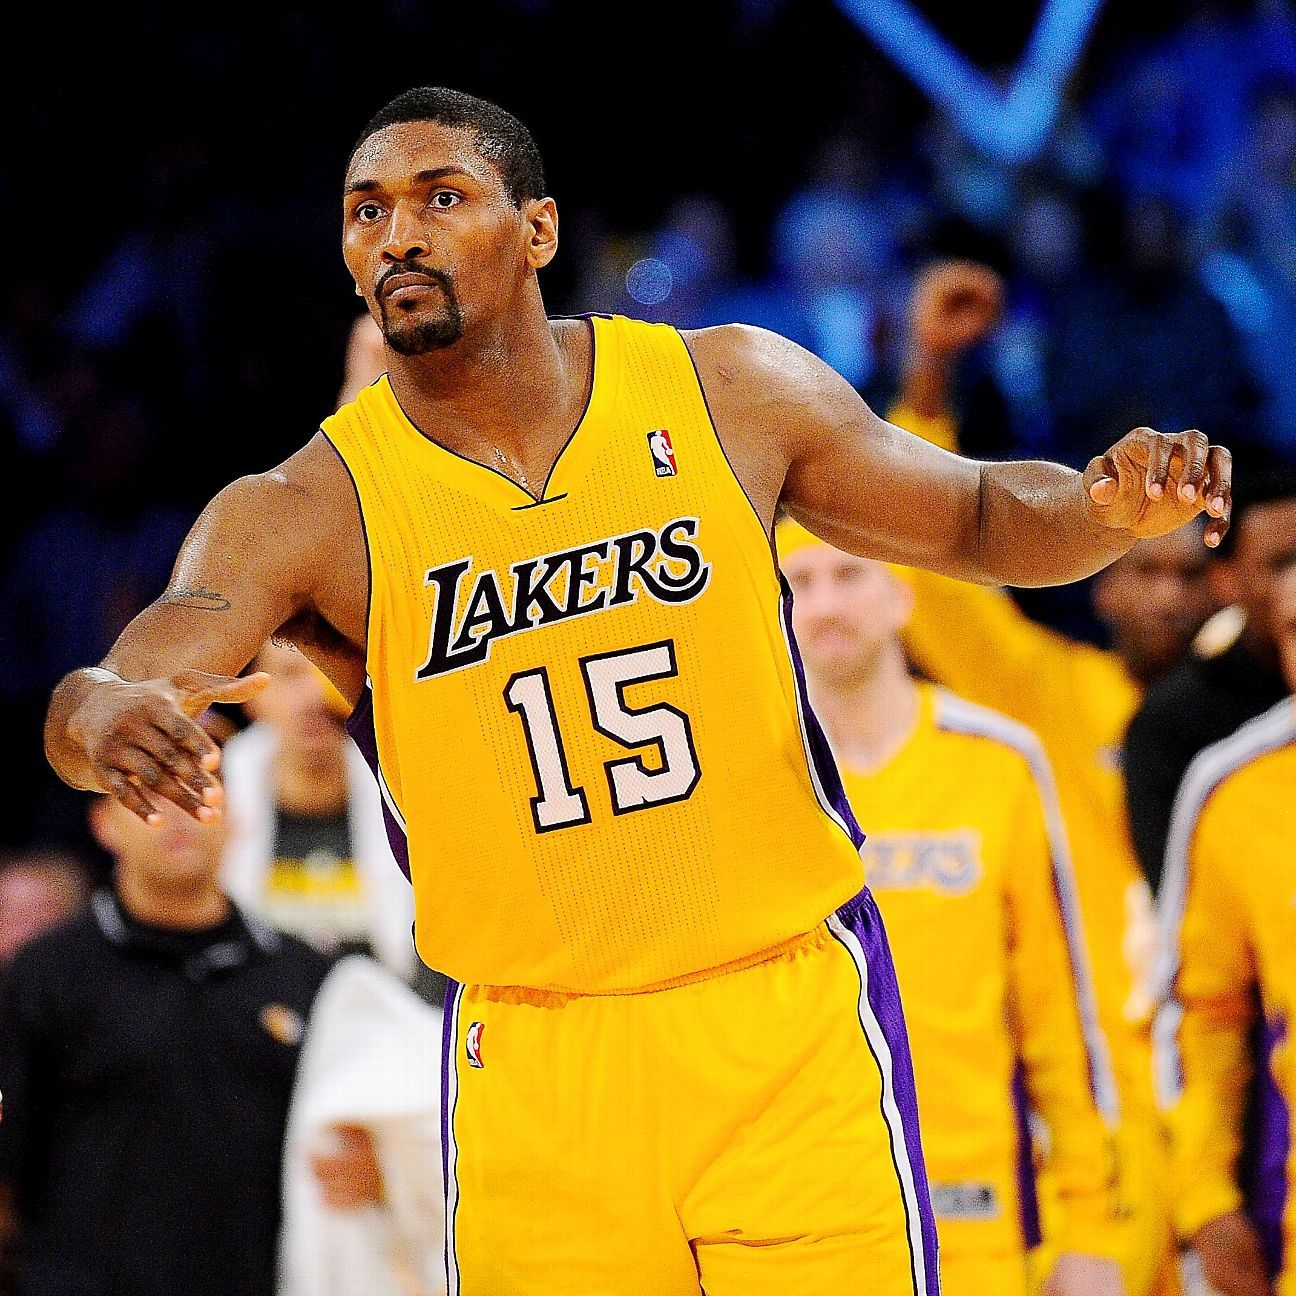 Metta World Peace To Be On Los Angeles Lakers Roster Lakers Roster Metta World Peace Los Angeles Lakers Roster